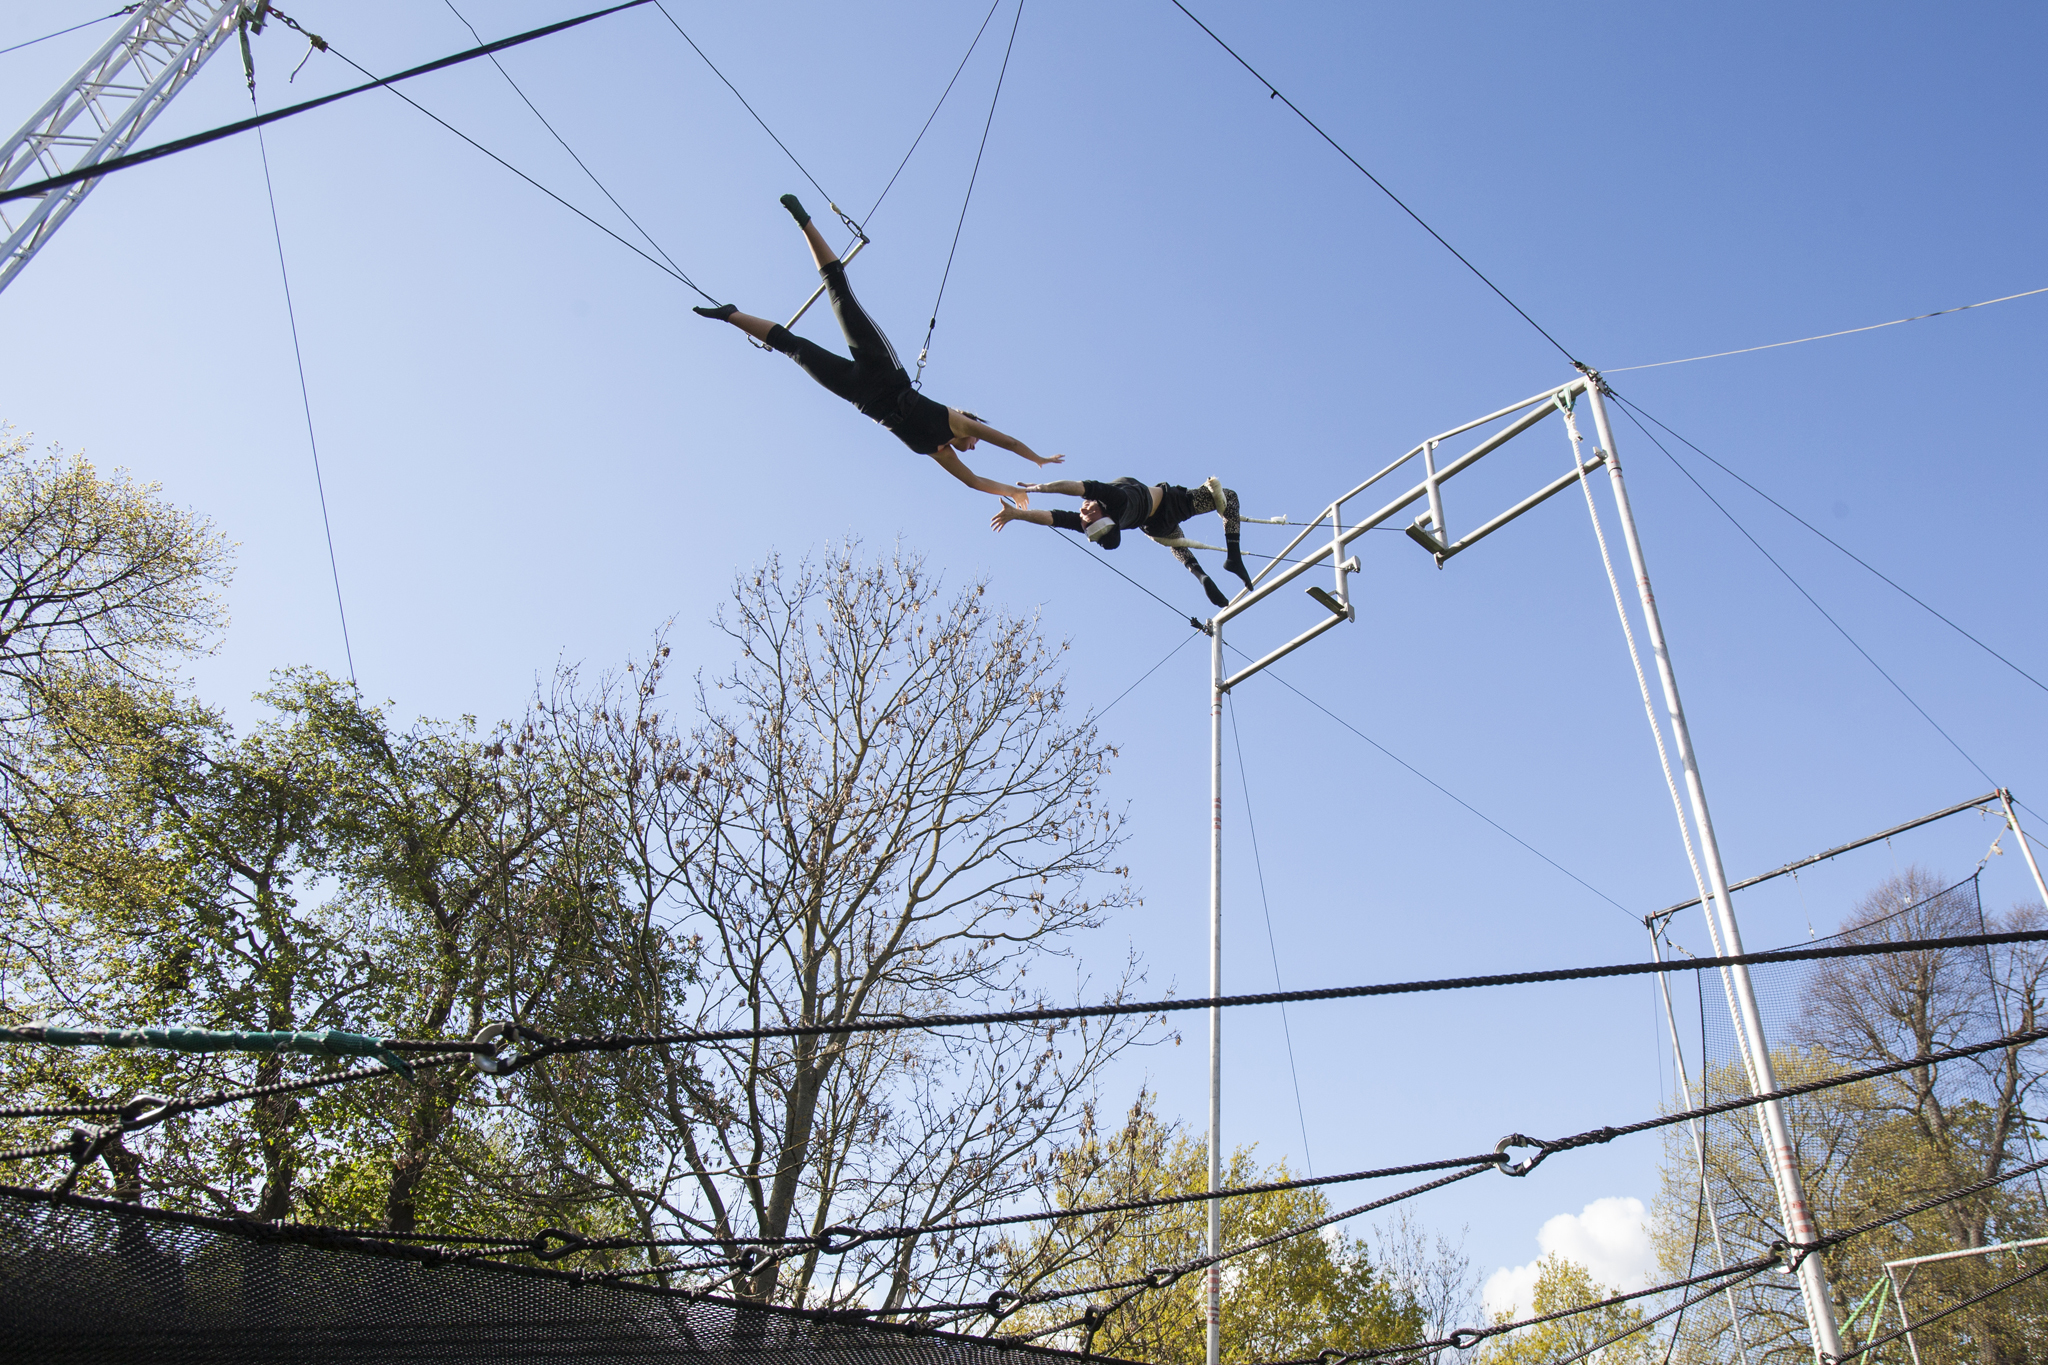 Flying Trapeze at Gorilla Circus